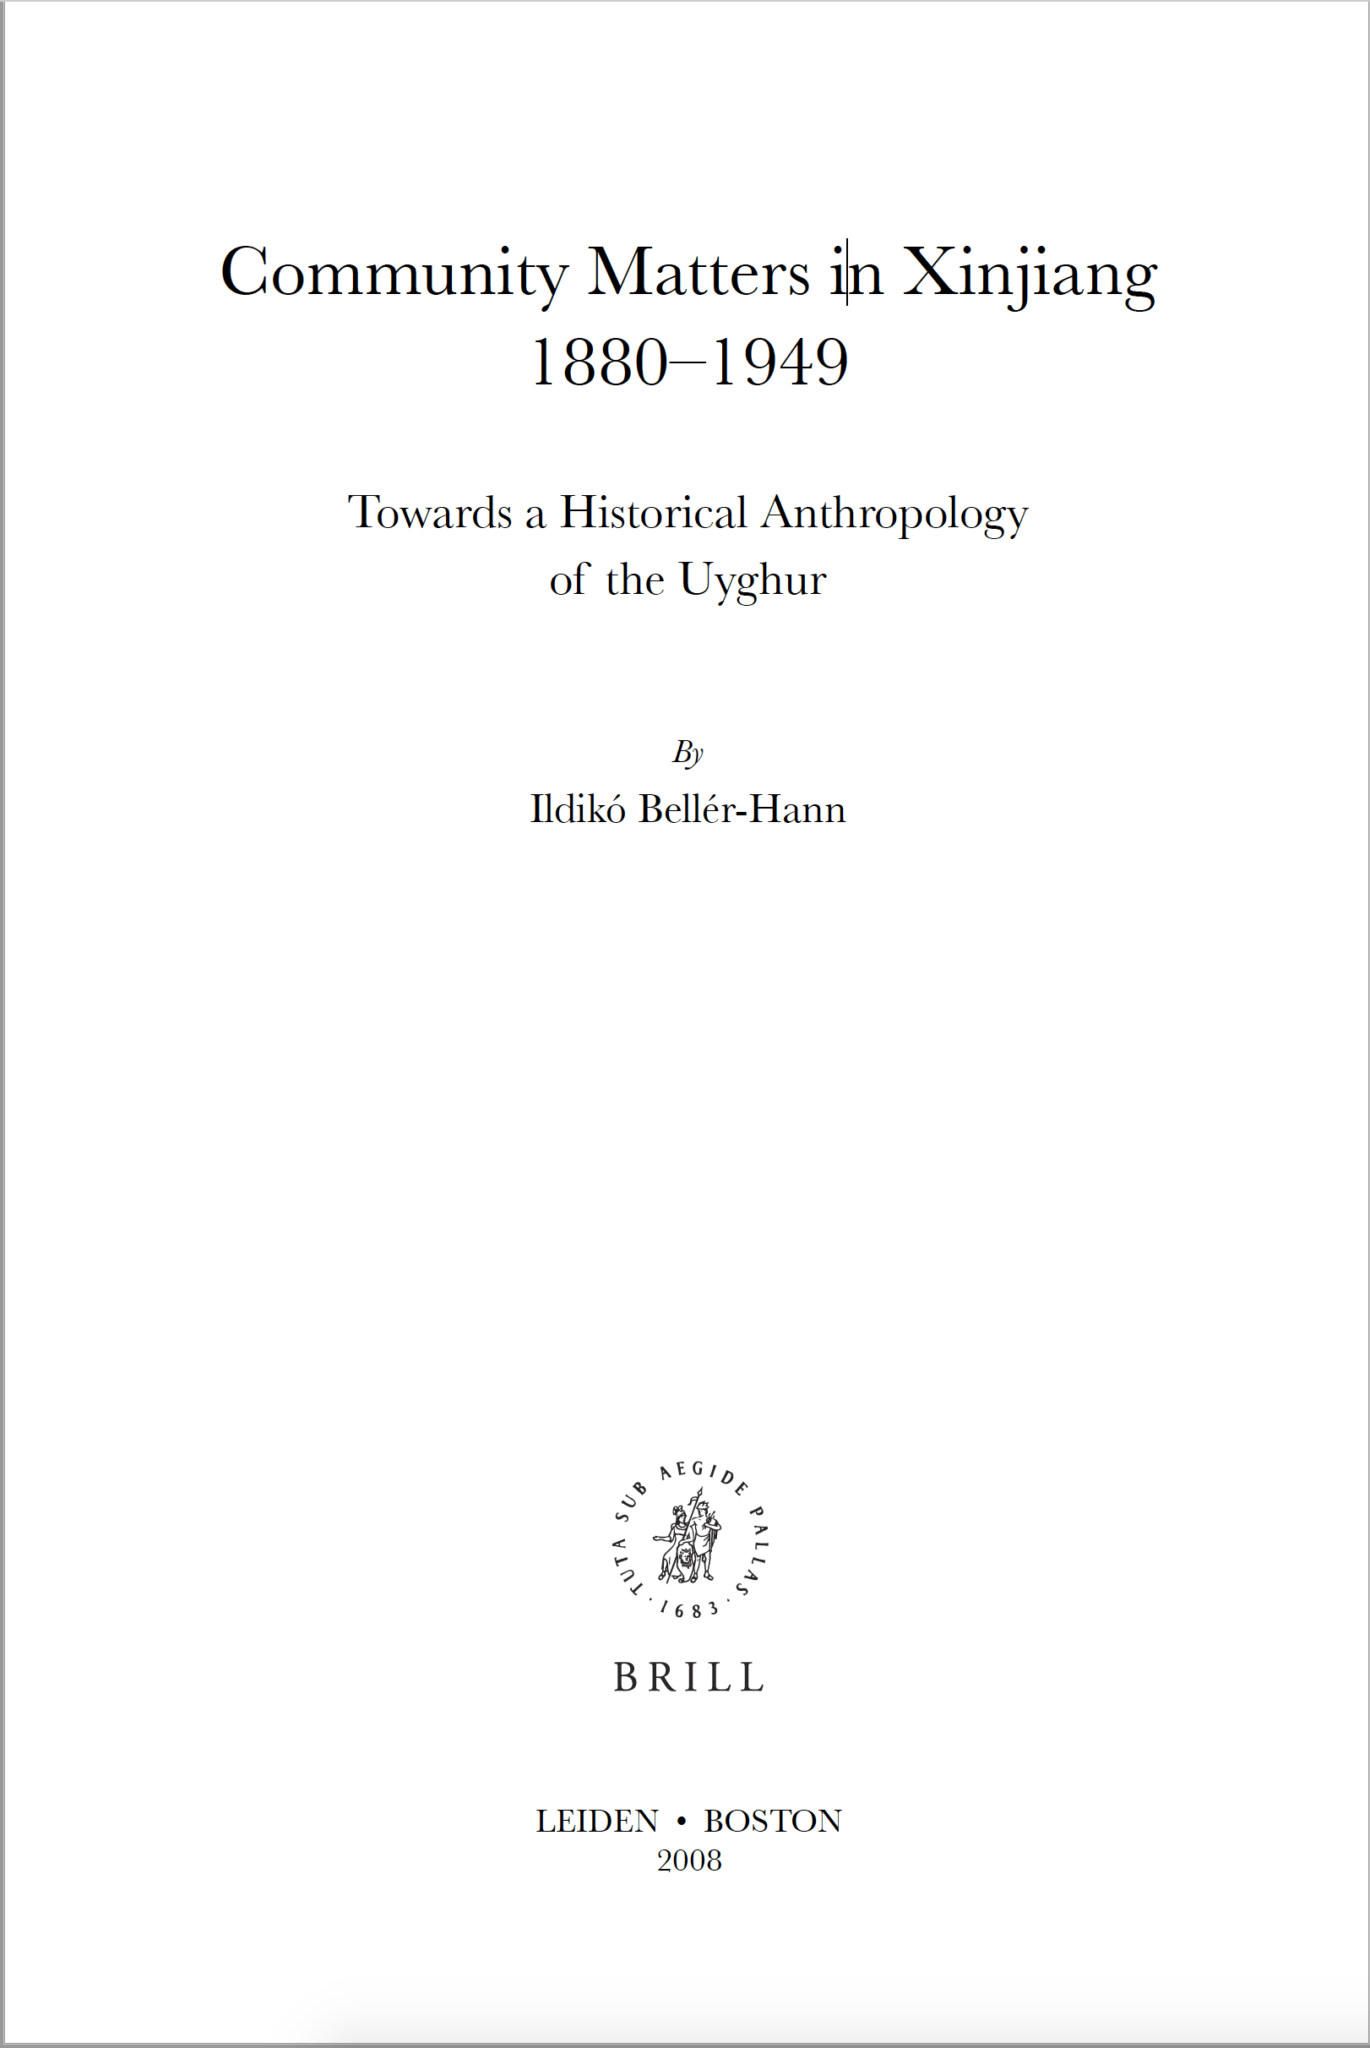 Screenshot 2020 02 01 at 14.49.09 - Community Matters in Xinjiang 1880-1949: Towards a Historical Anthropology of the Uyghur